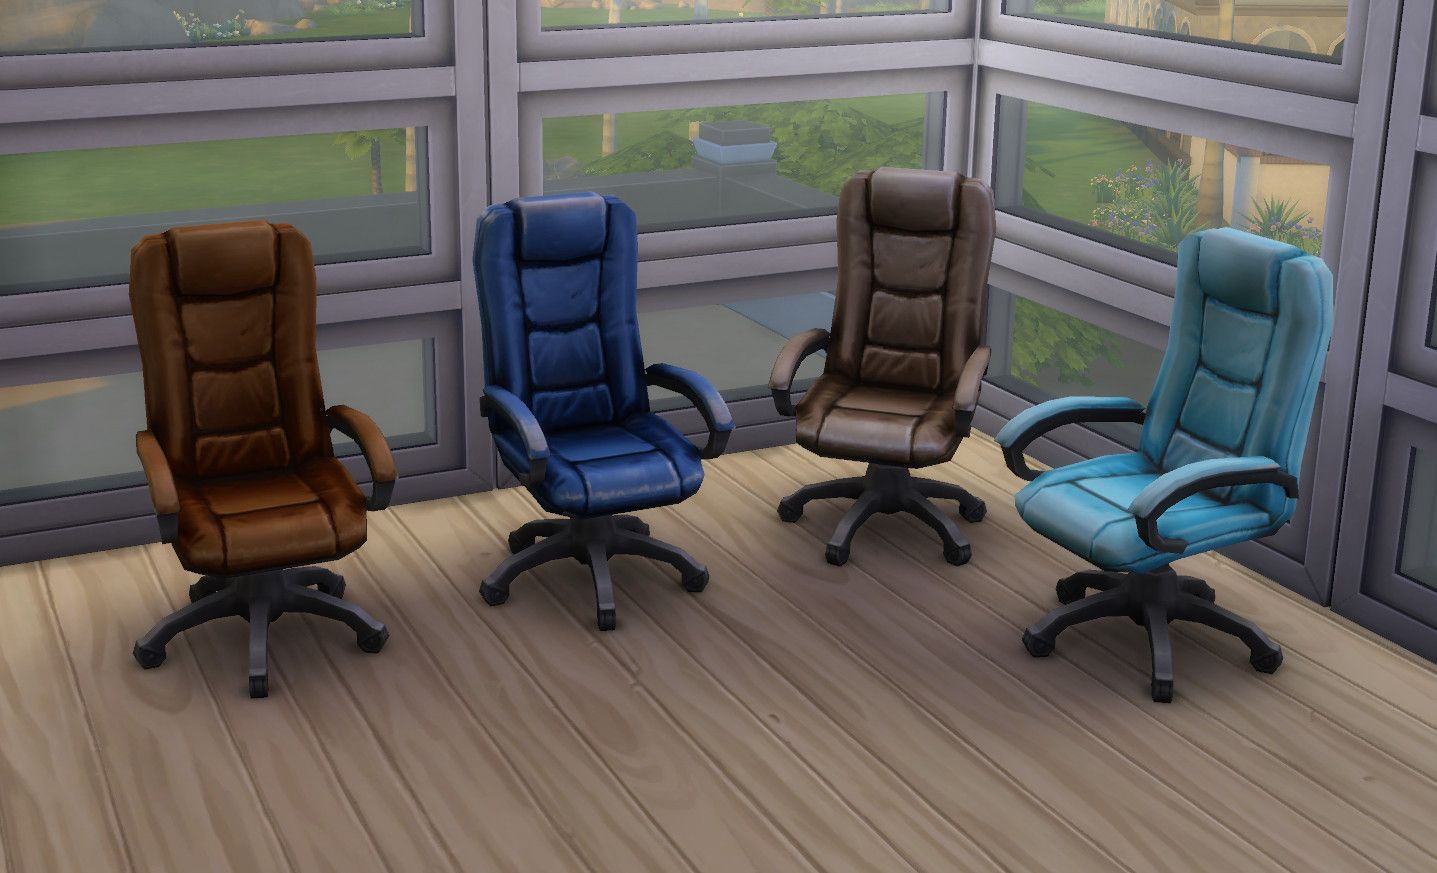 The Boss Executive Desk Chairs Recoloured To Suit Your Décor.